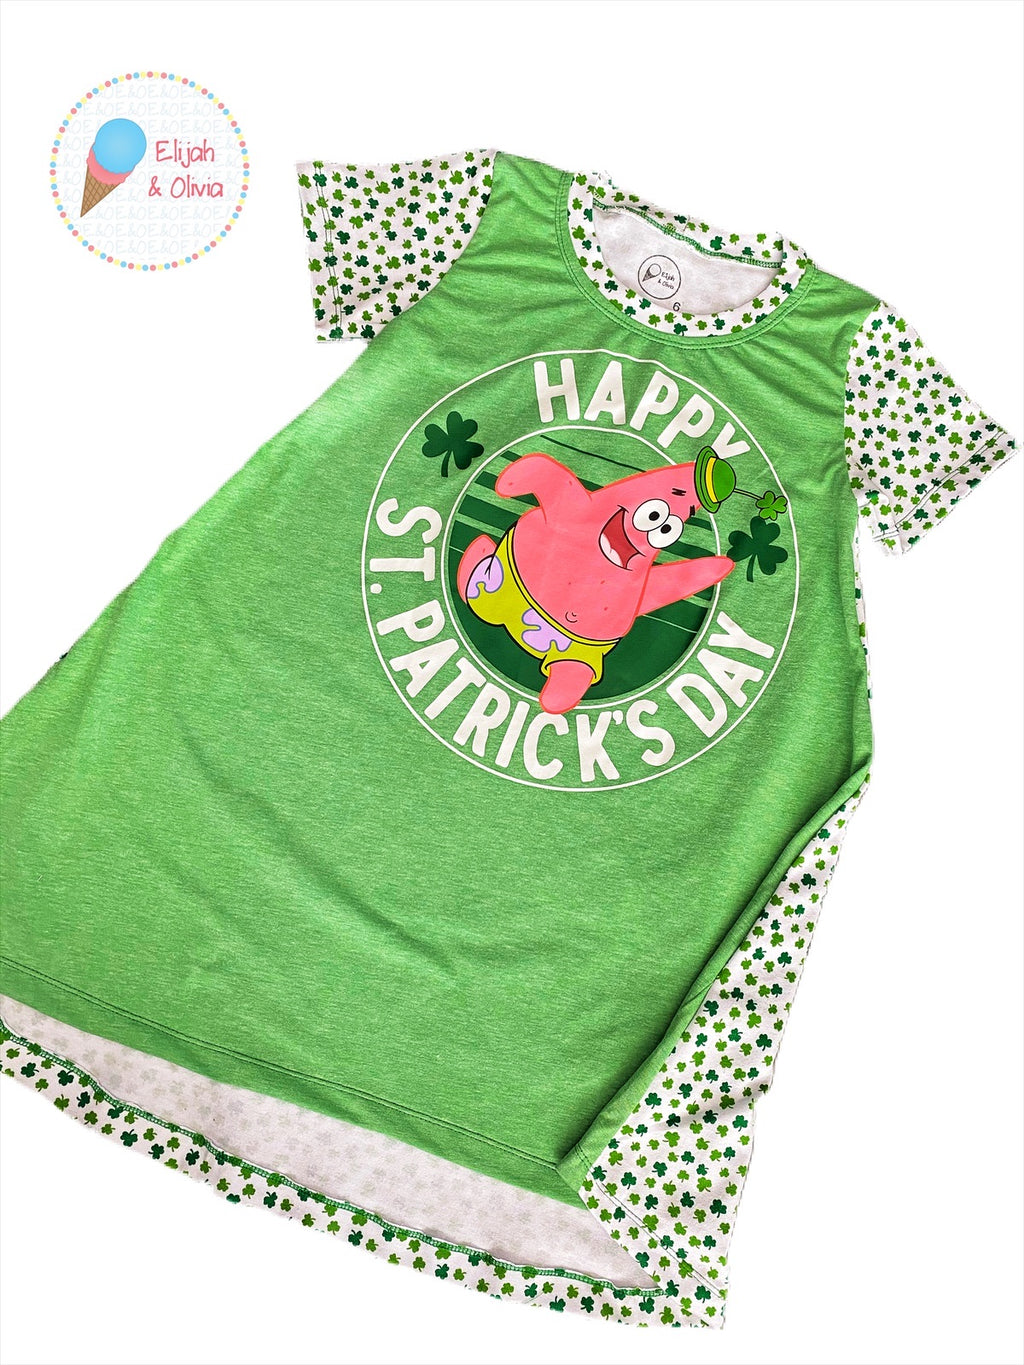 T-Shirt Dress: Happy St. Patrick's Day